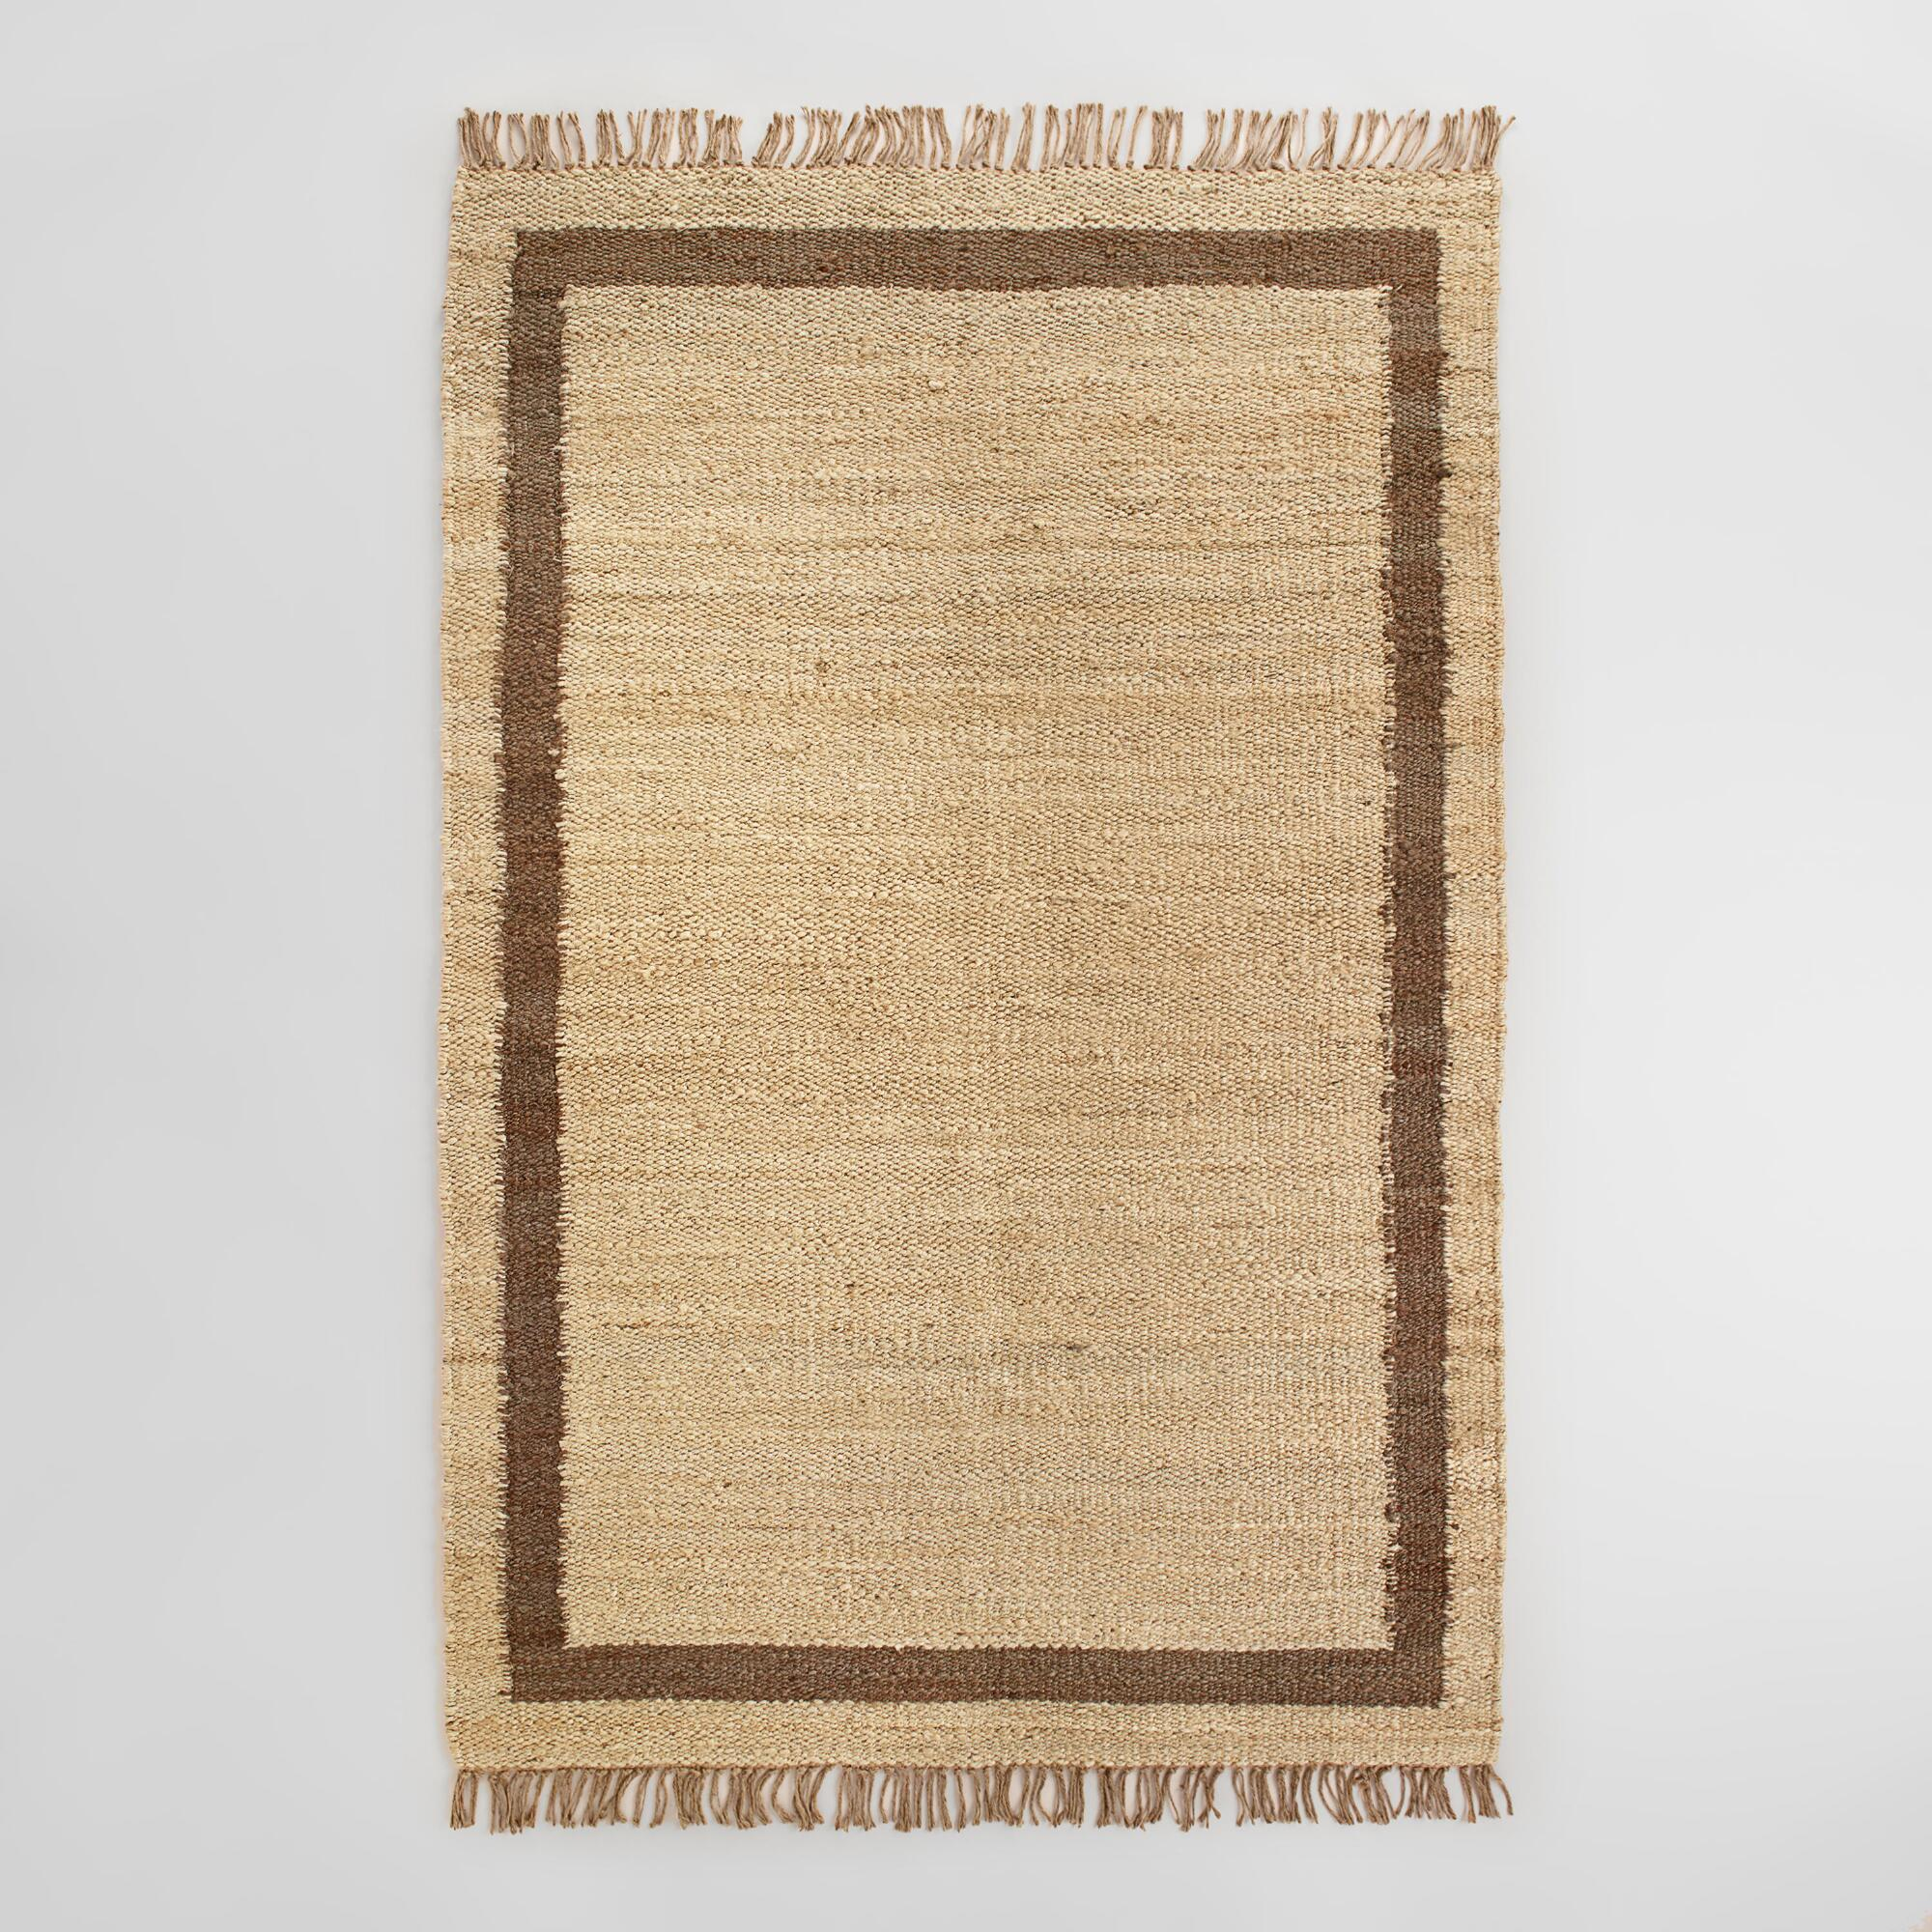 Shiitake Windowpane Bordered Jute Area Rug